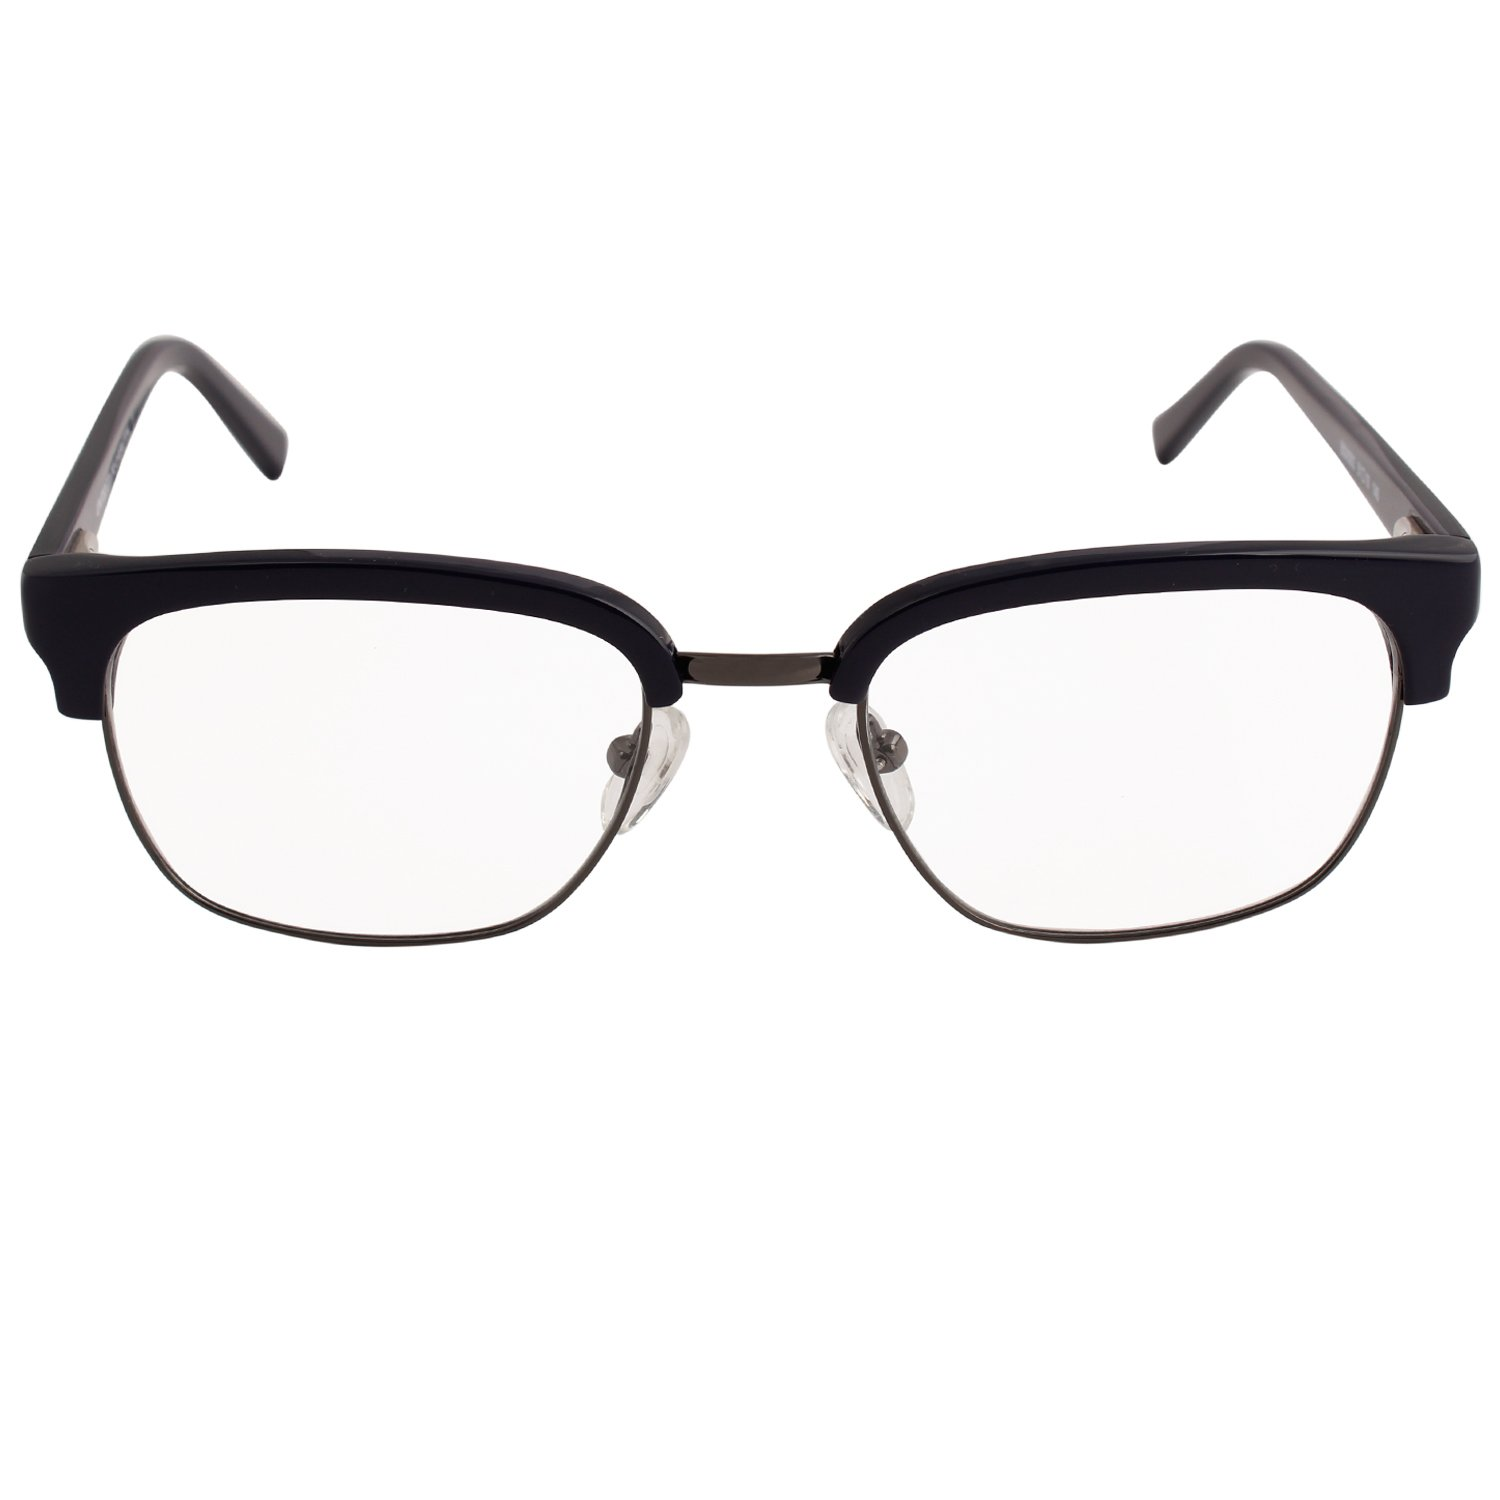 UCB Spectacle Frame BS05912(Blue): Amazon.in: Clothing & Accessories